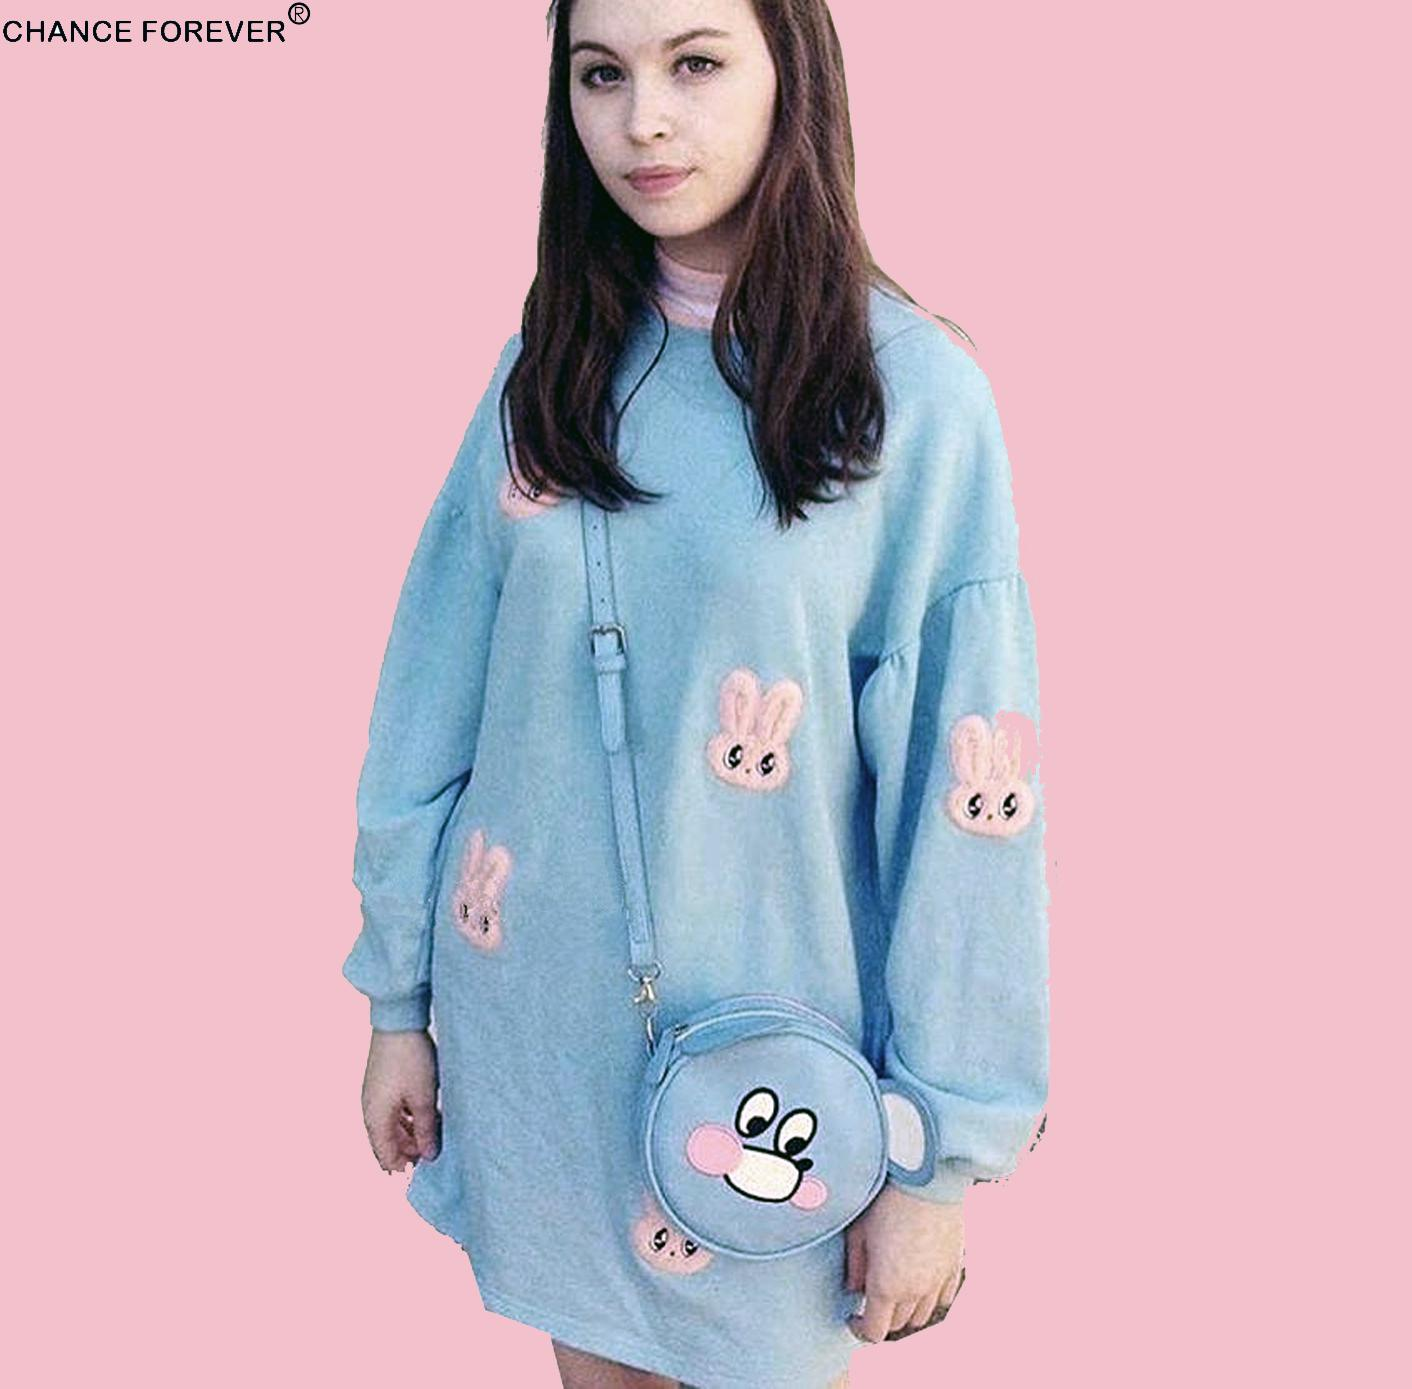 244aae66bbf Rabbit lazy oaf pink white stripe mock neck oversize sweatshirt dress  Vintage velvet Pullover cute loose Feminino Dresses-in Dresses from Women s  Clothing ...